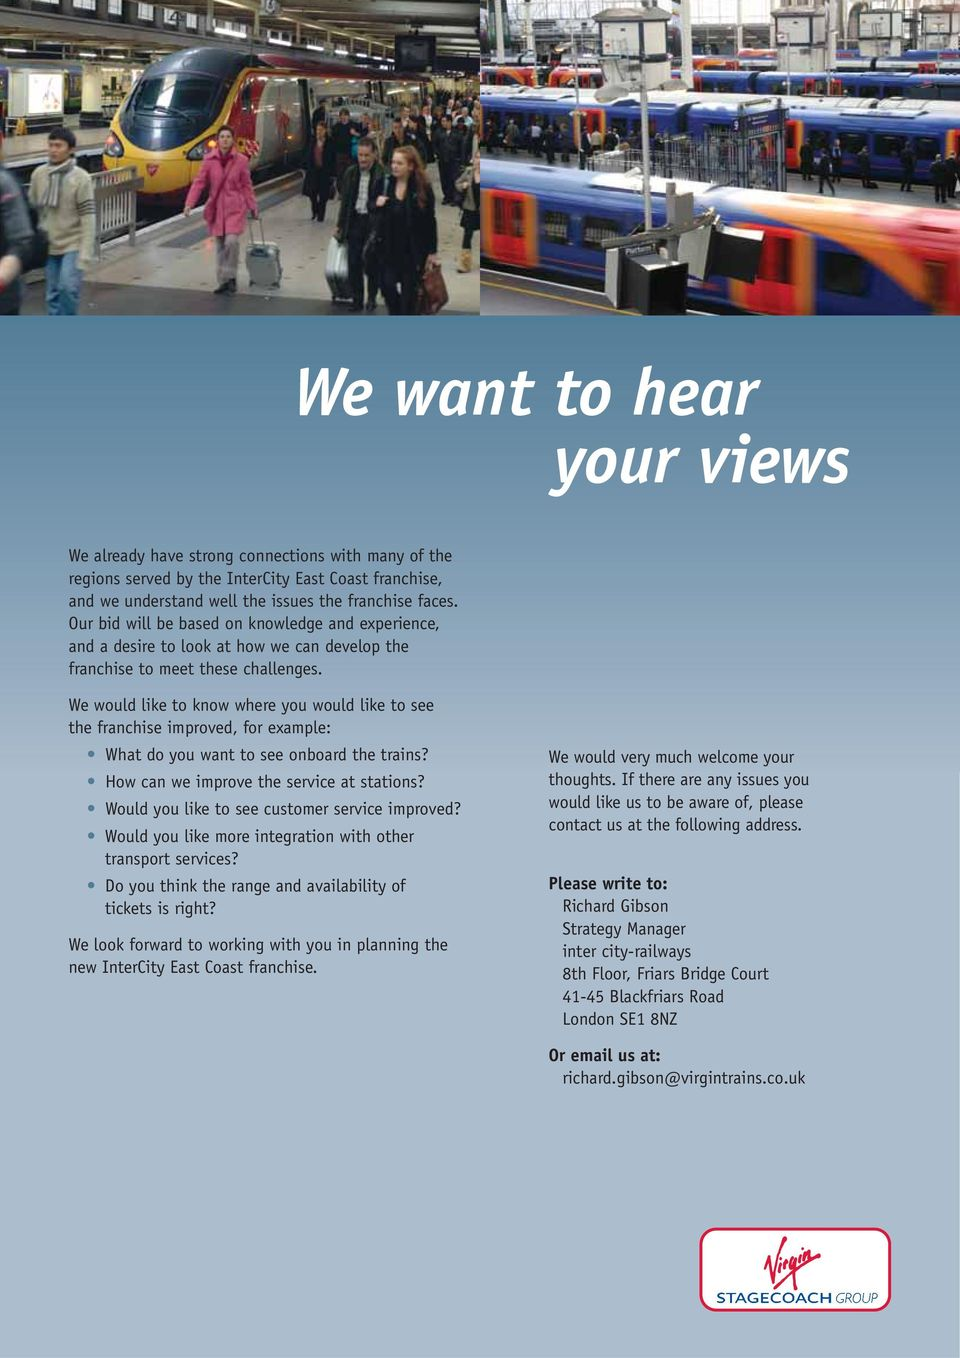 We would like to know where you would like to see the franchise improved, for example: What do you want to see onboard the trains? How can we improve the service at stations?